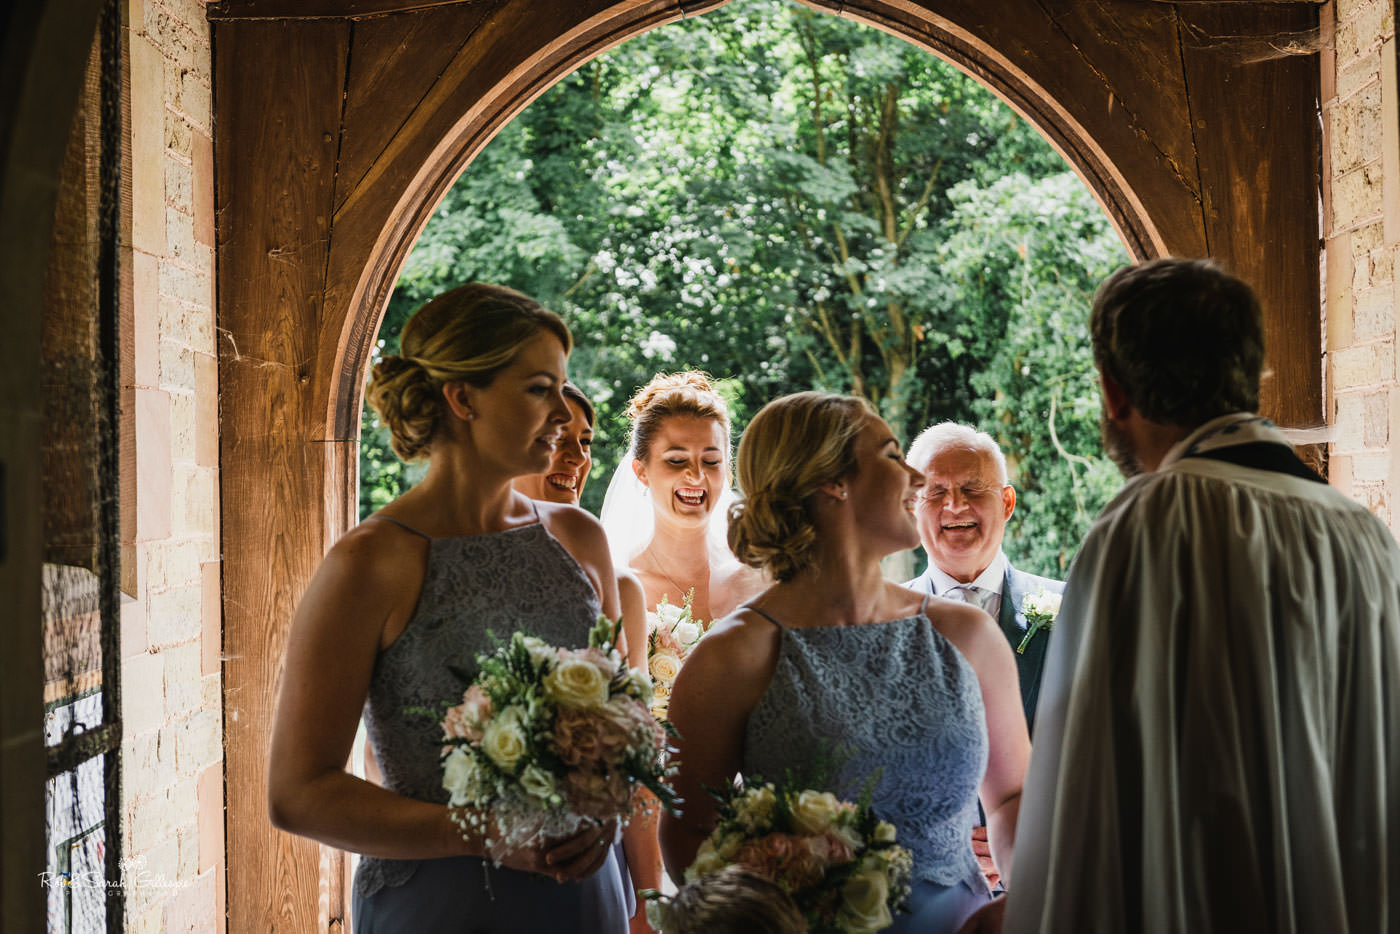 Bride and bridesmaids in church doorway at St Peter's Diddlebury